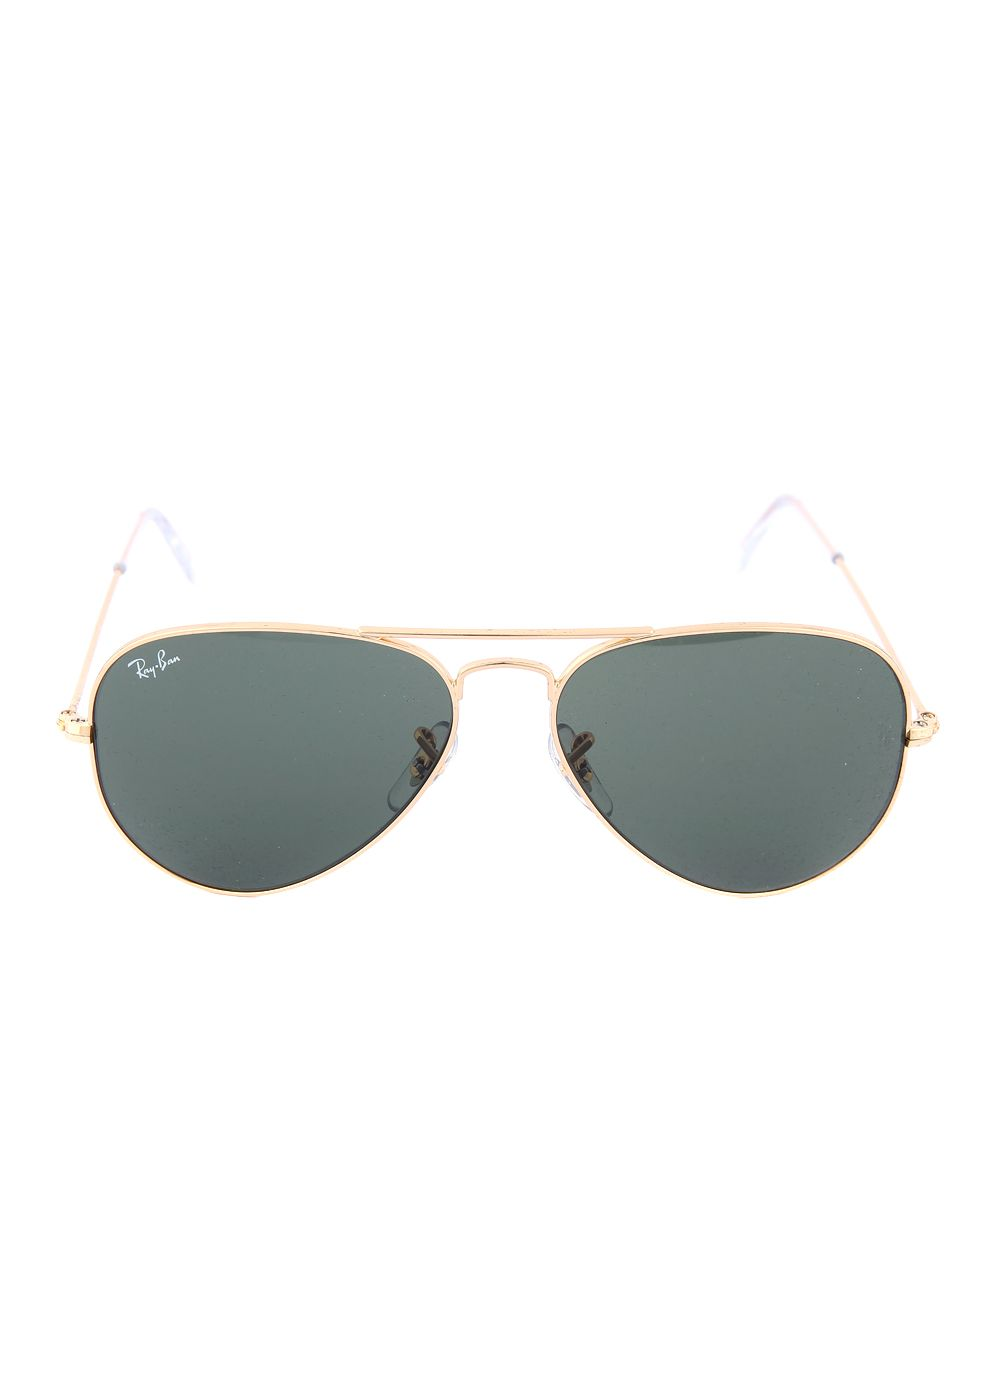 ae4d87fdfd Ray Ban Aviators -  137.99 on brandsExclusive now!